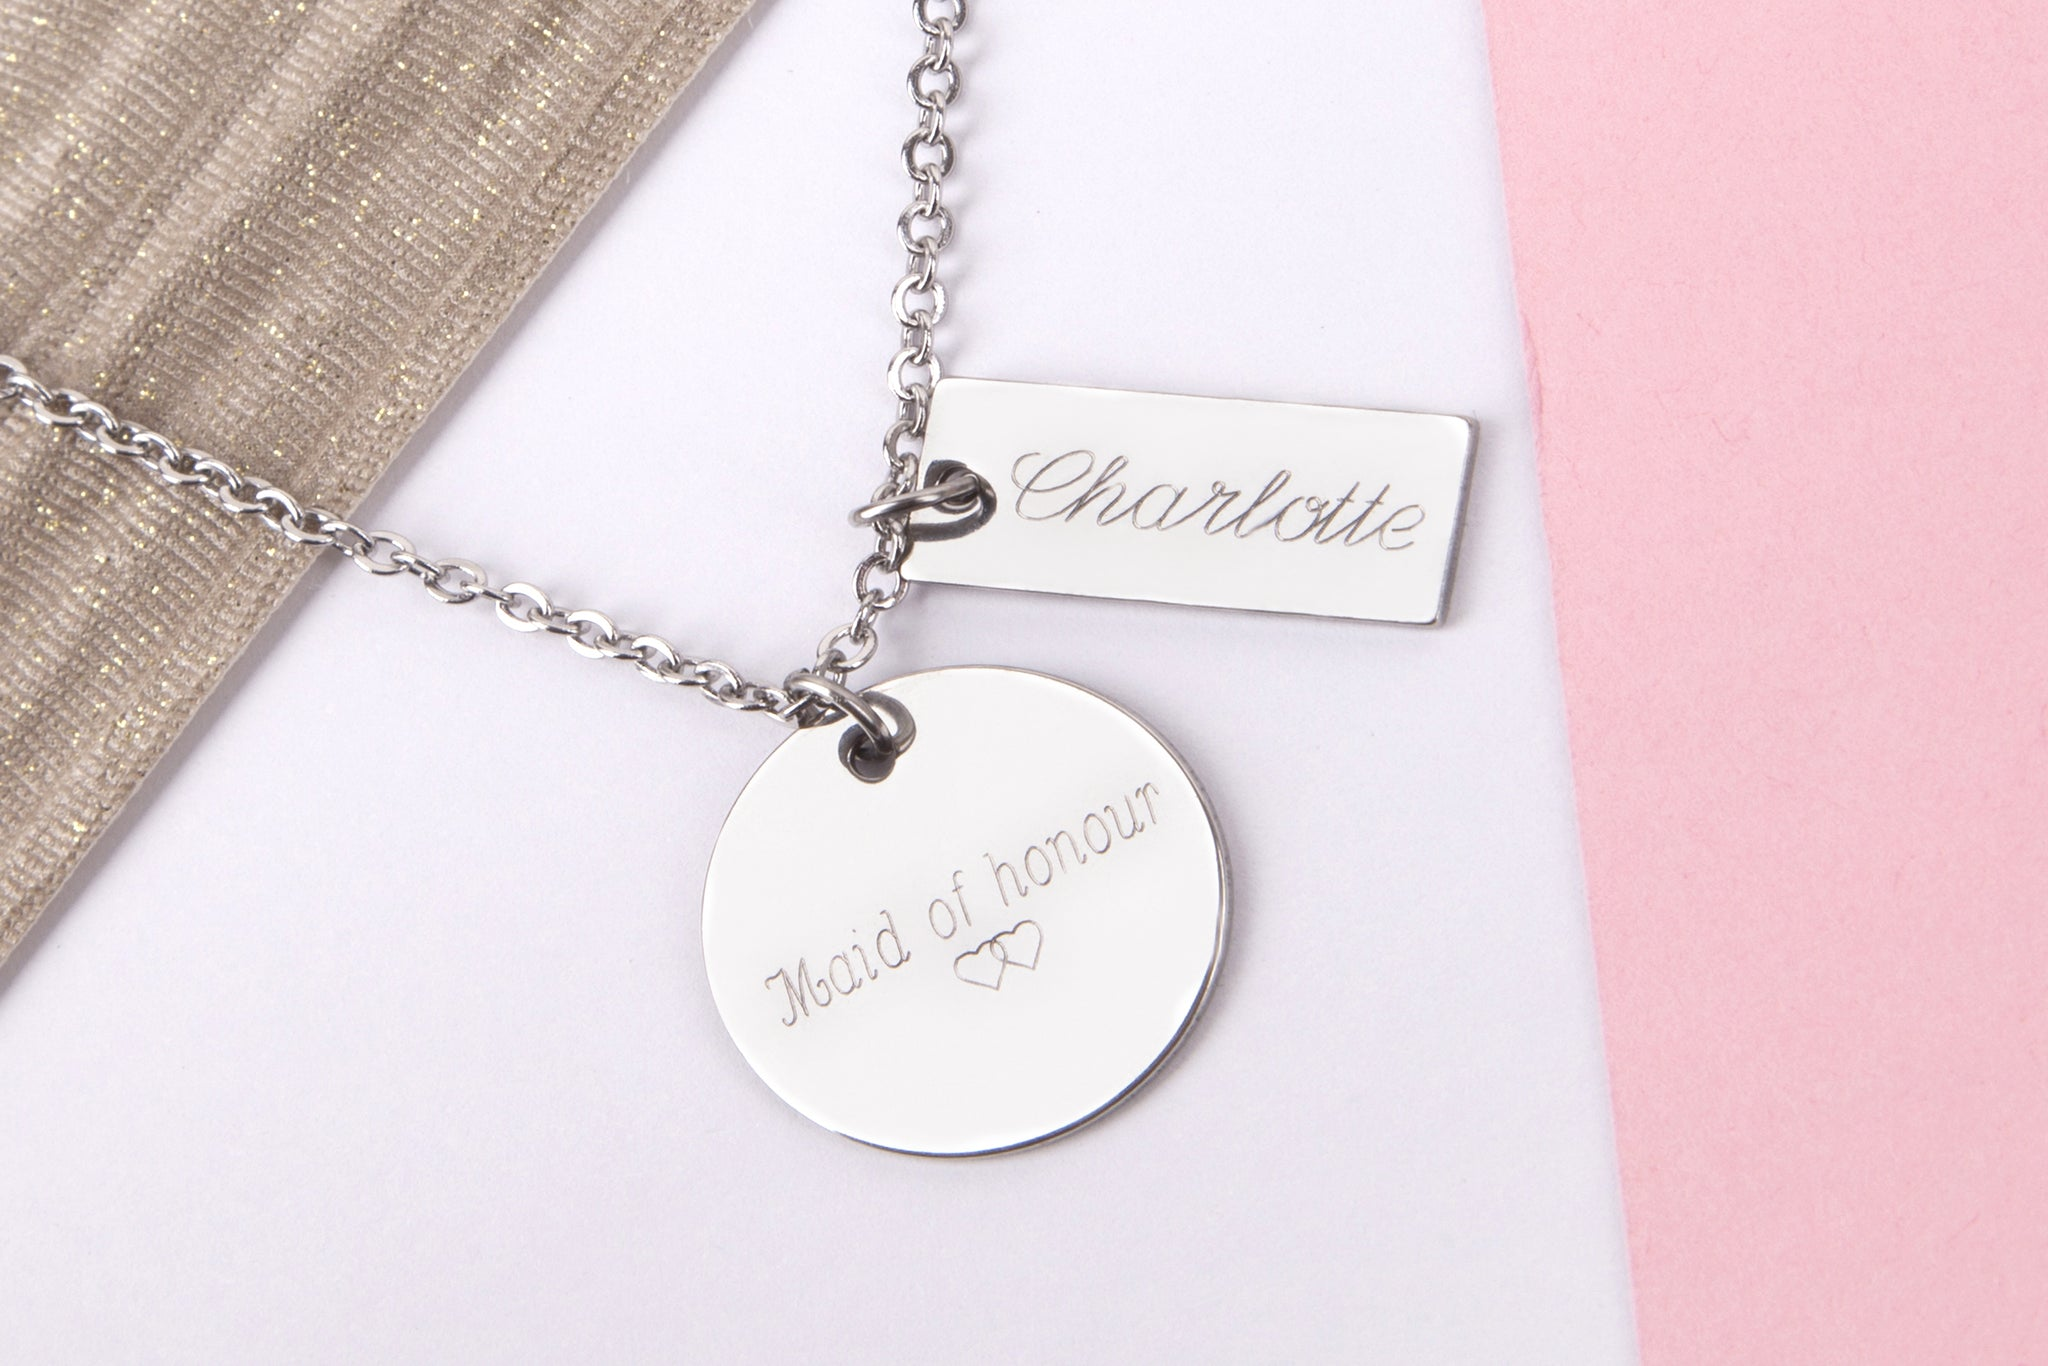 Silver engraved maid of honour wedding gift 'maid of honour' Stainless steel necklace - Statement Made Jewellery